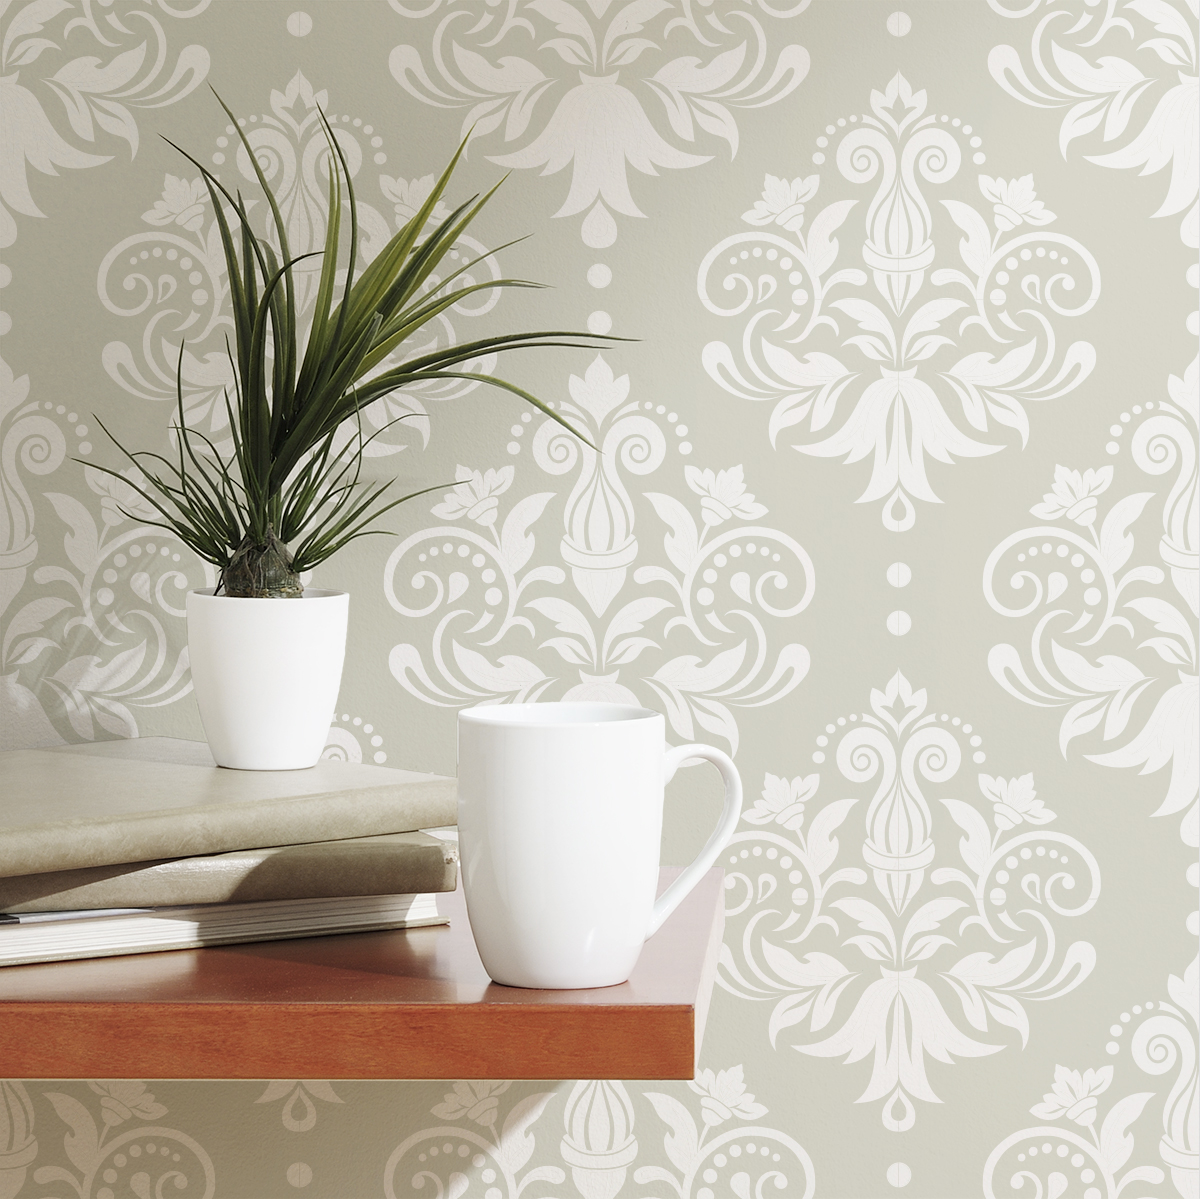 1. Removable Wallpaper